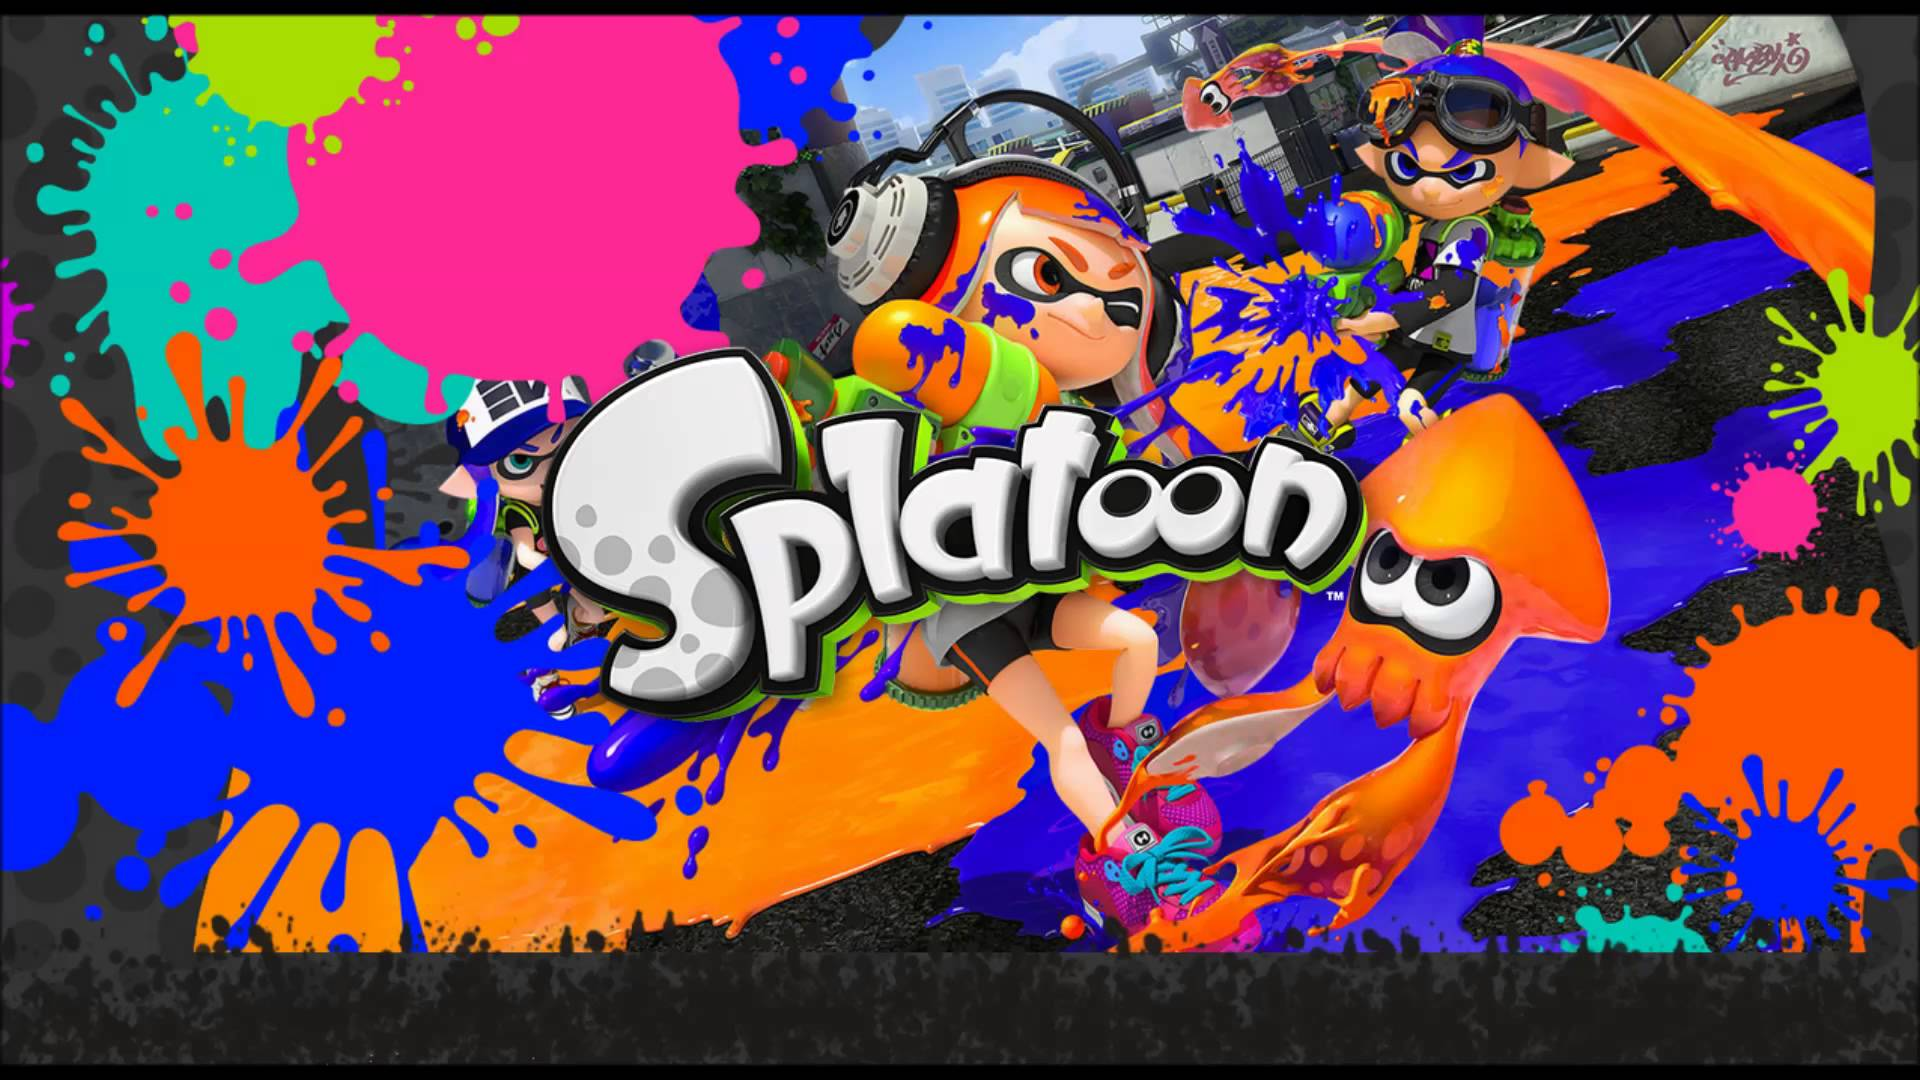 Splatoon – The Wii U Exclusives Shoots Past 1m Sales Worldwide